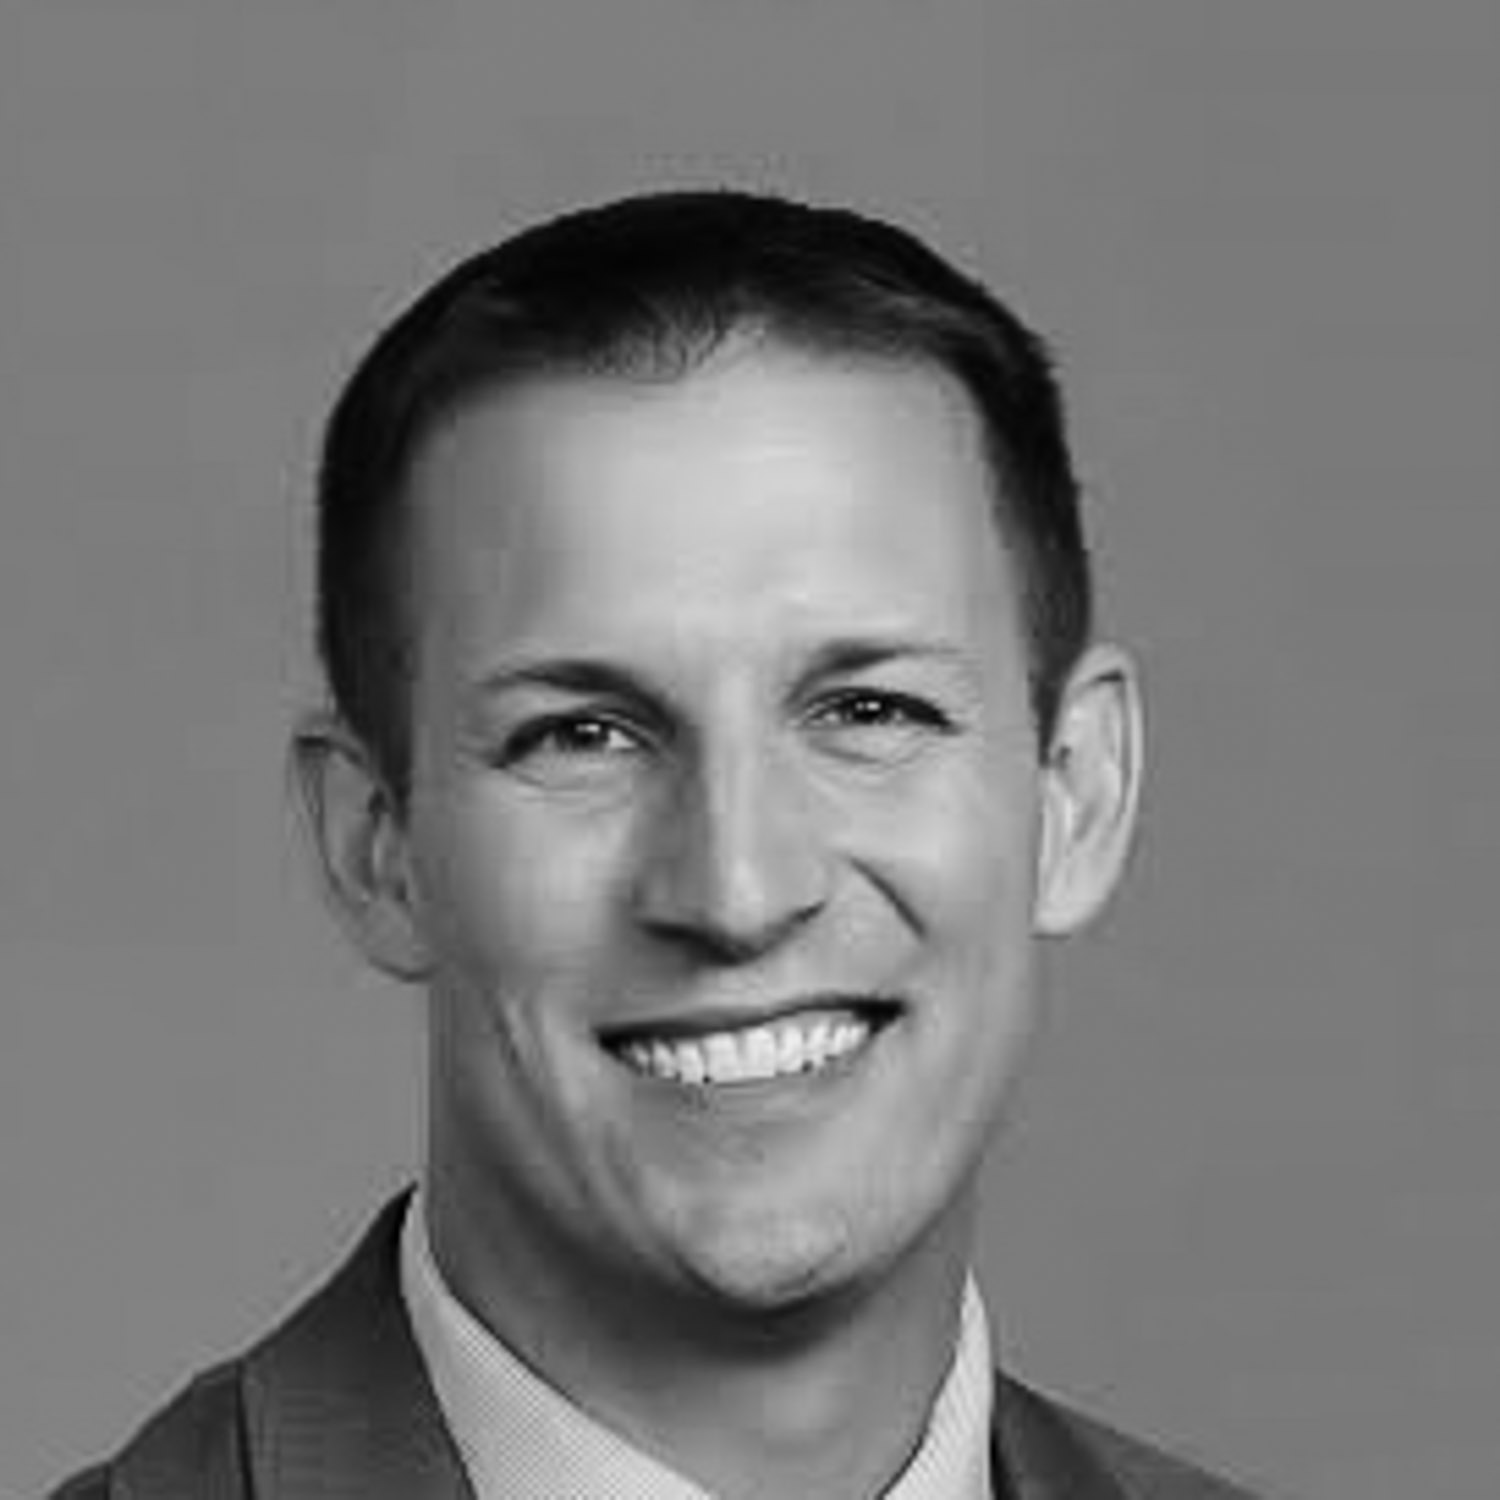 Peter Nafzger - (Ph.D. Concordia Seminary, St. Louis, MO) is assistant professor of Practical Theology at Concordia Seminary, St. Louis. He is the author of These Are Written: Toward a Cruciform Theology of Scripture.